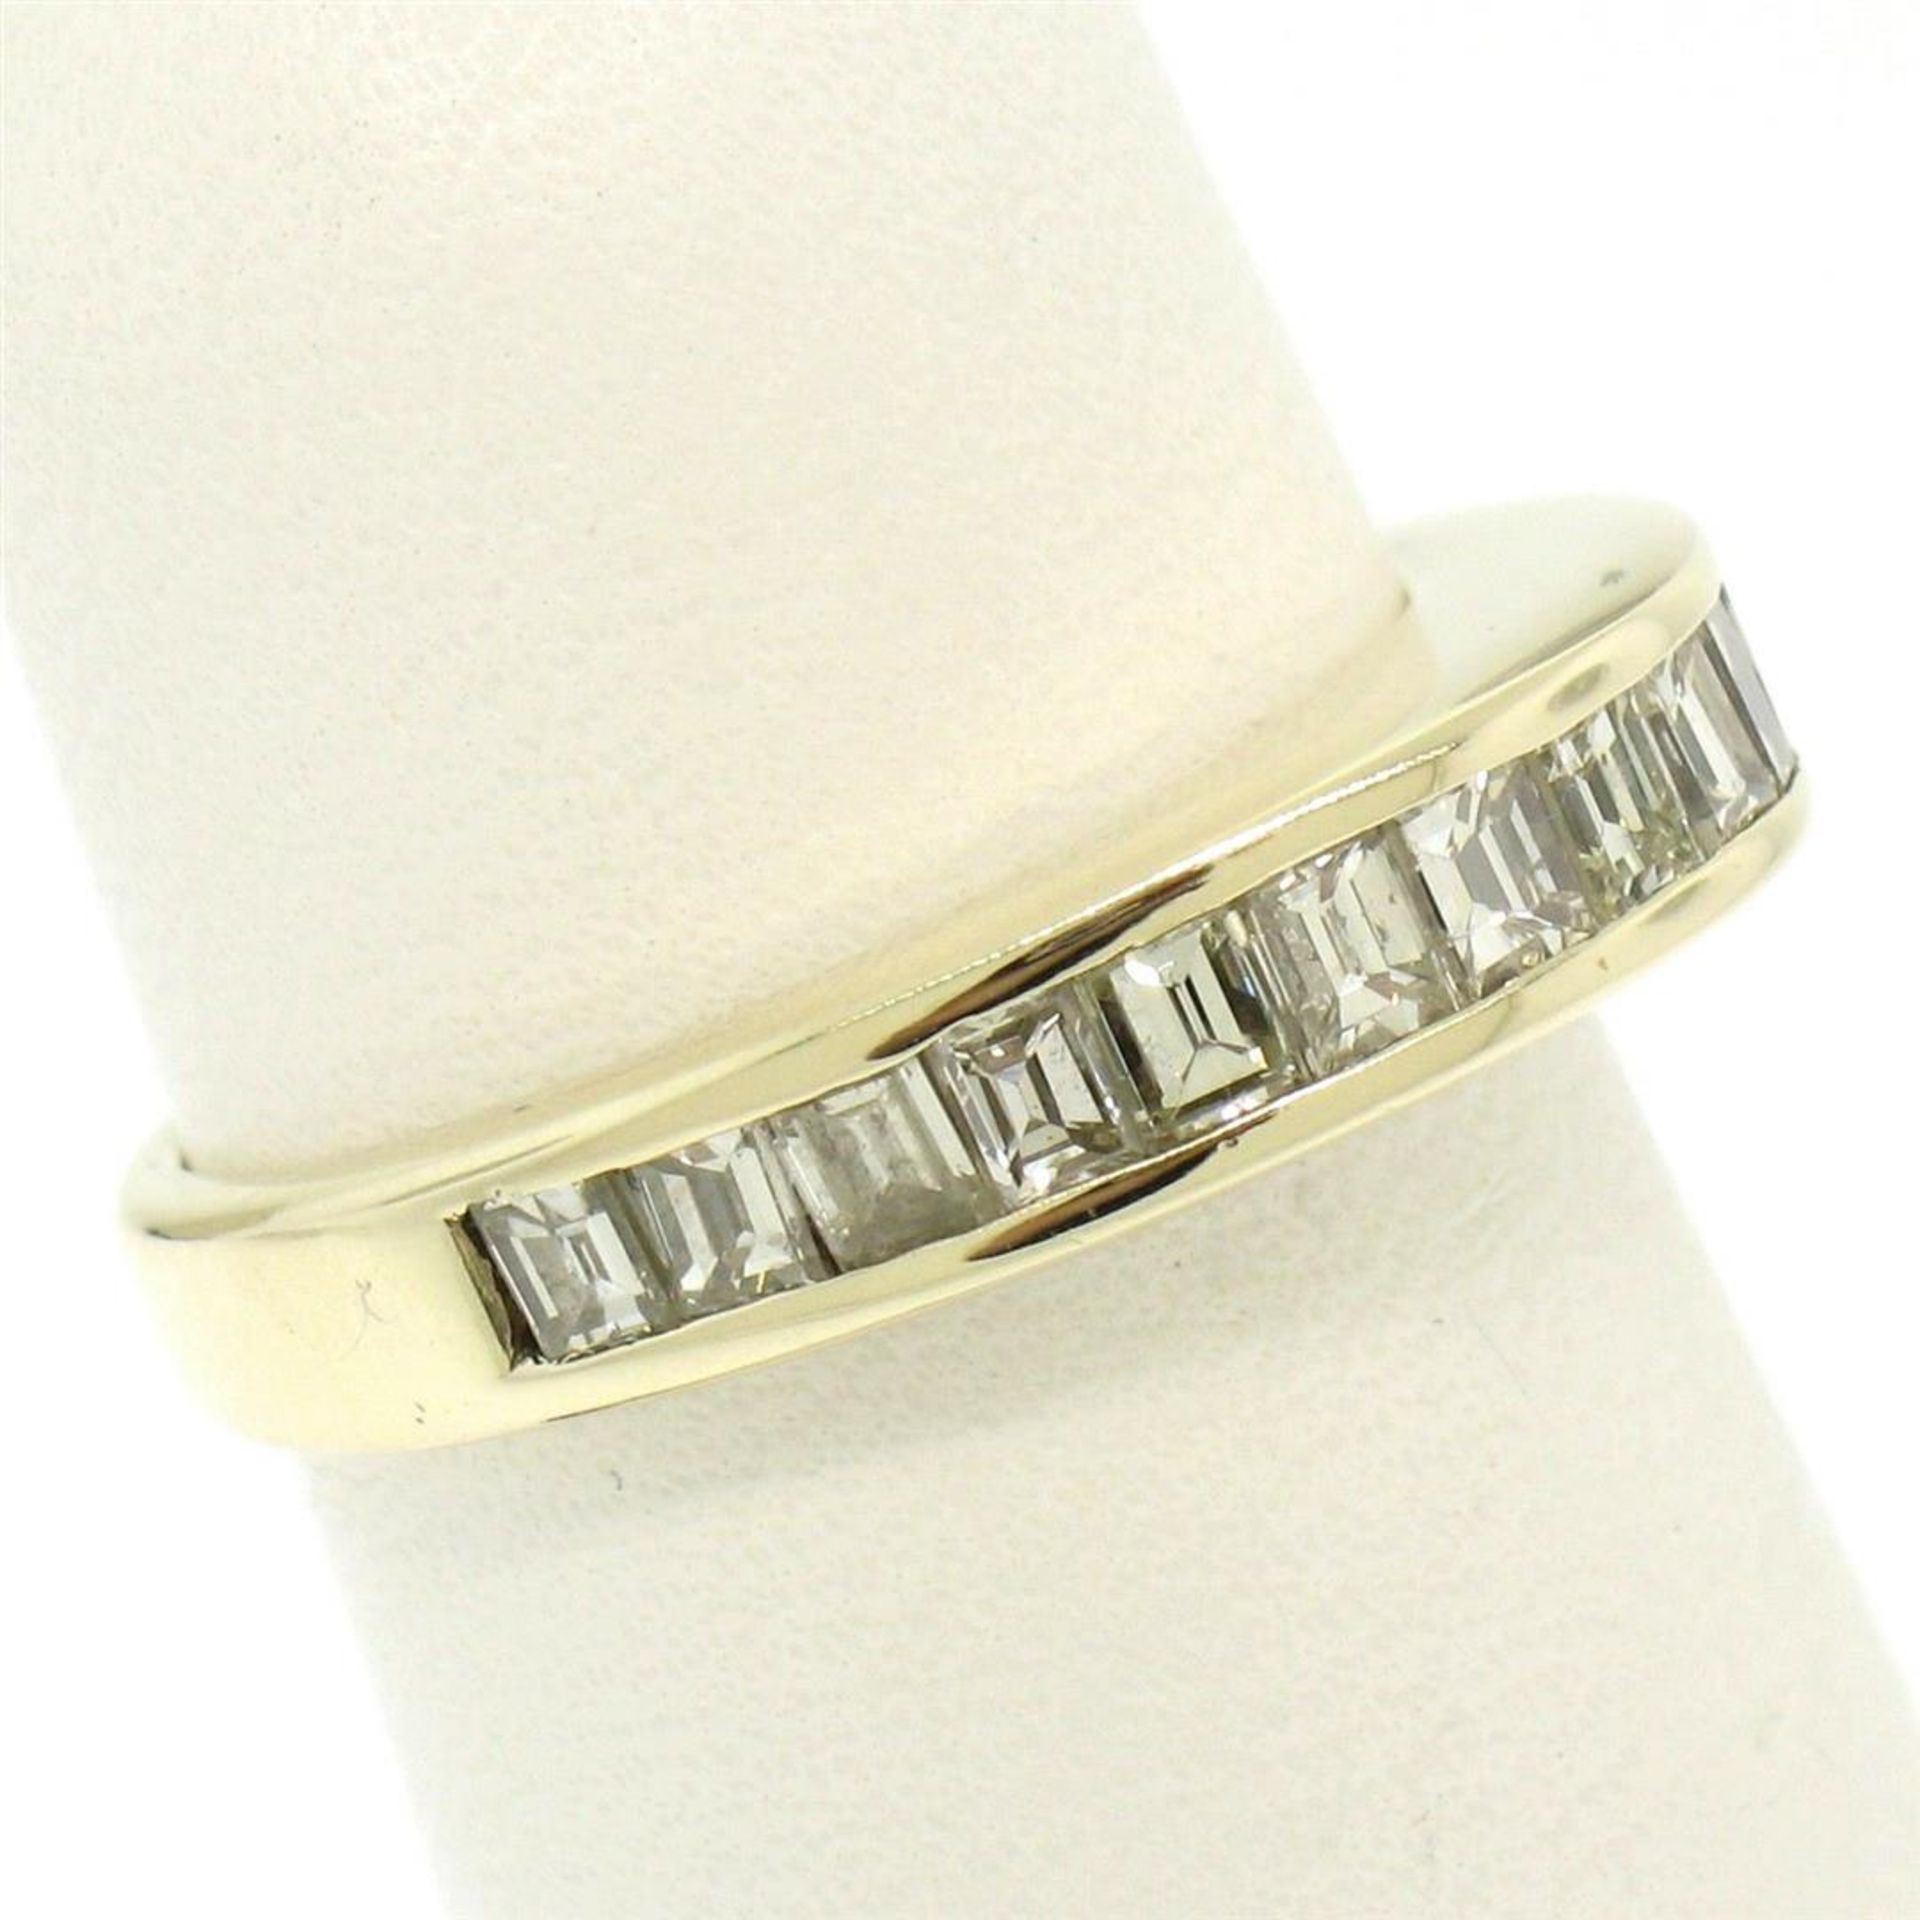 14kt Yellow Gold 1.00 ctw Baguette Diamond Channel Domed Wedding Band Ring - Image 5 of 9